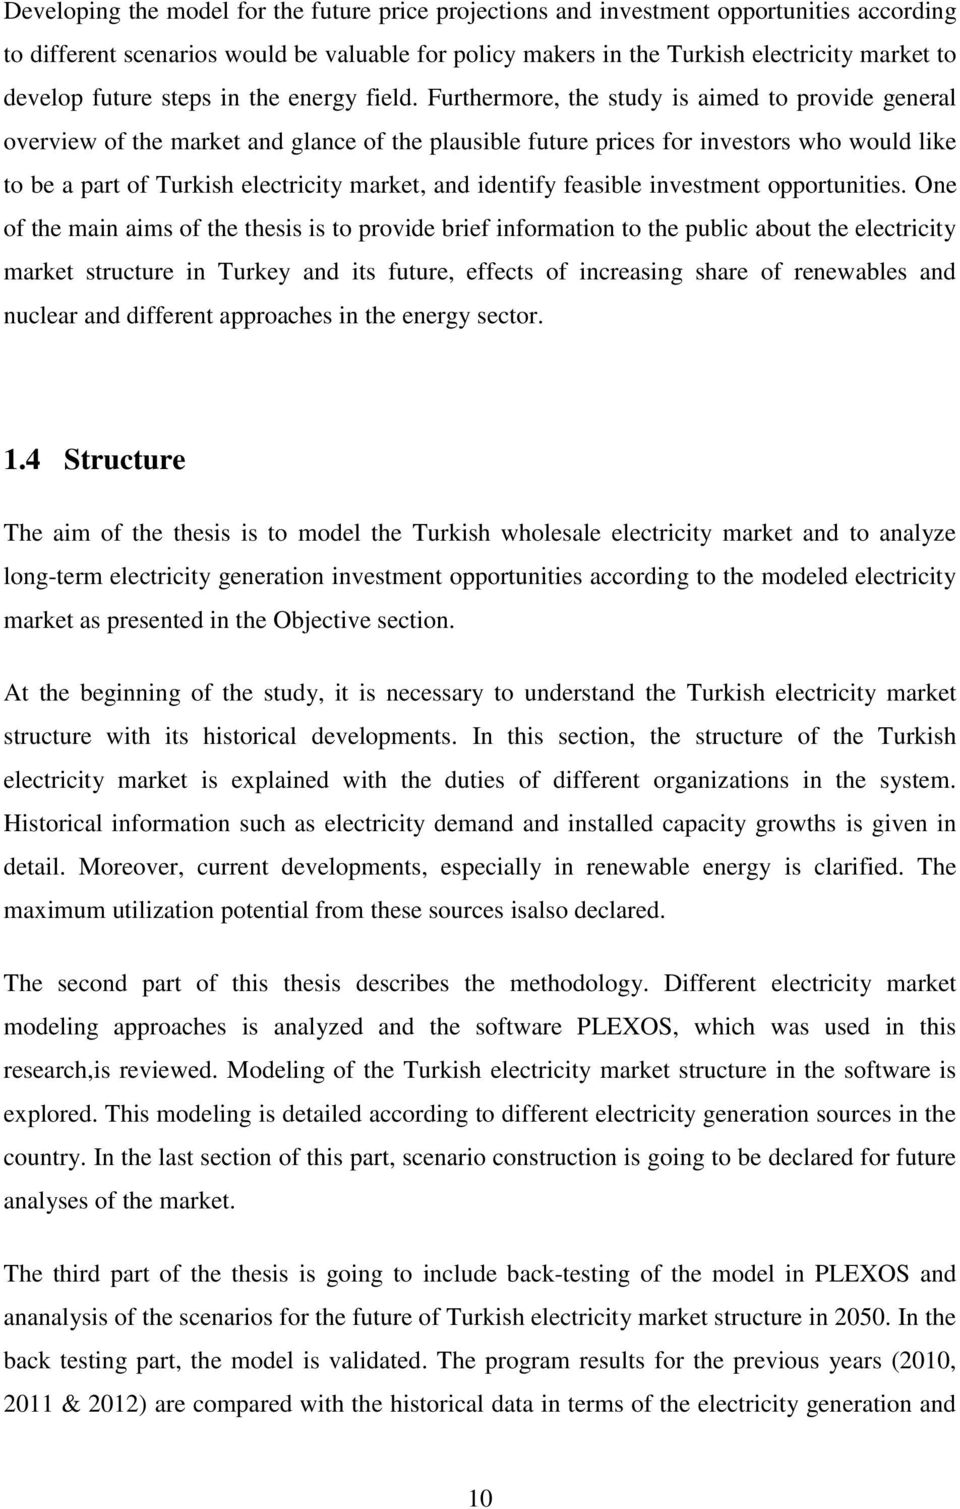 Furthermore, the study is aimed to provide general overview of the market and glance of the plausible future prices for investors who would like to be a part of Turkish electricity market, and